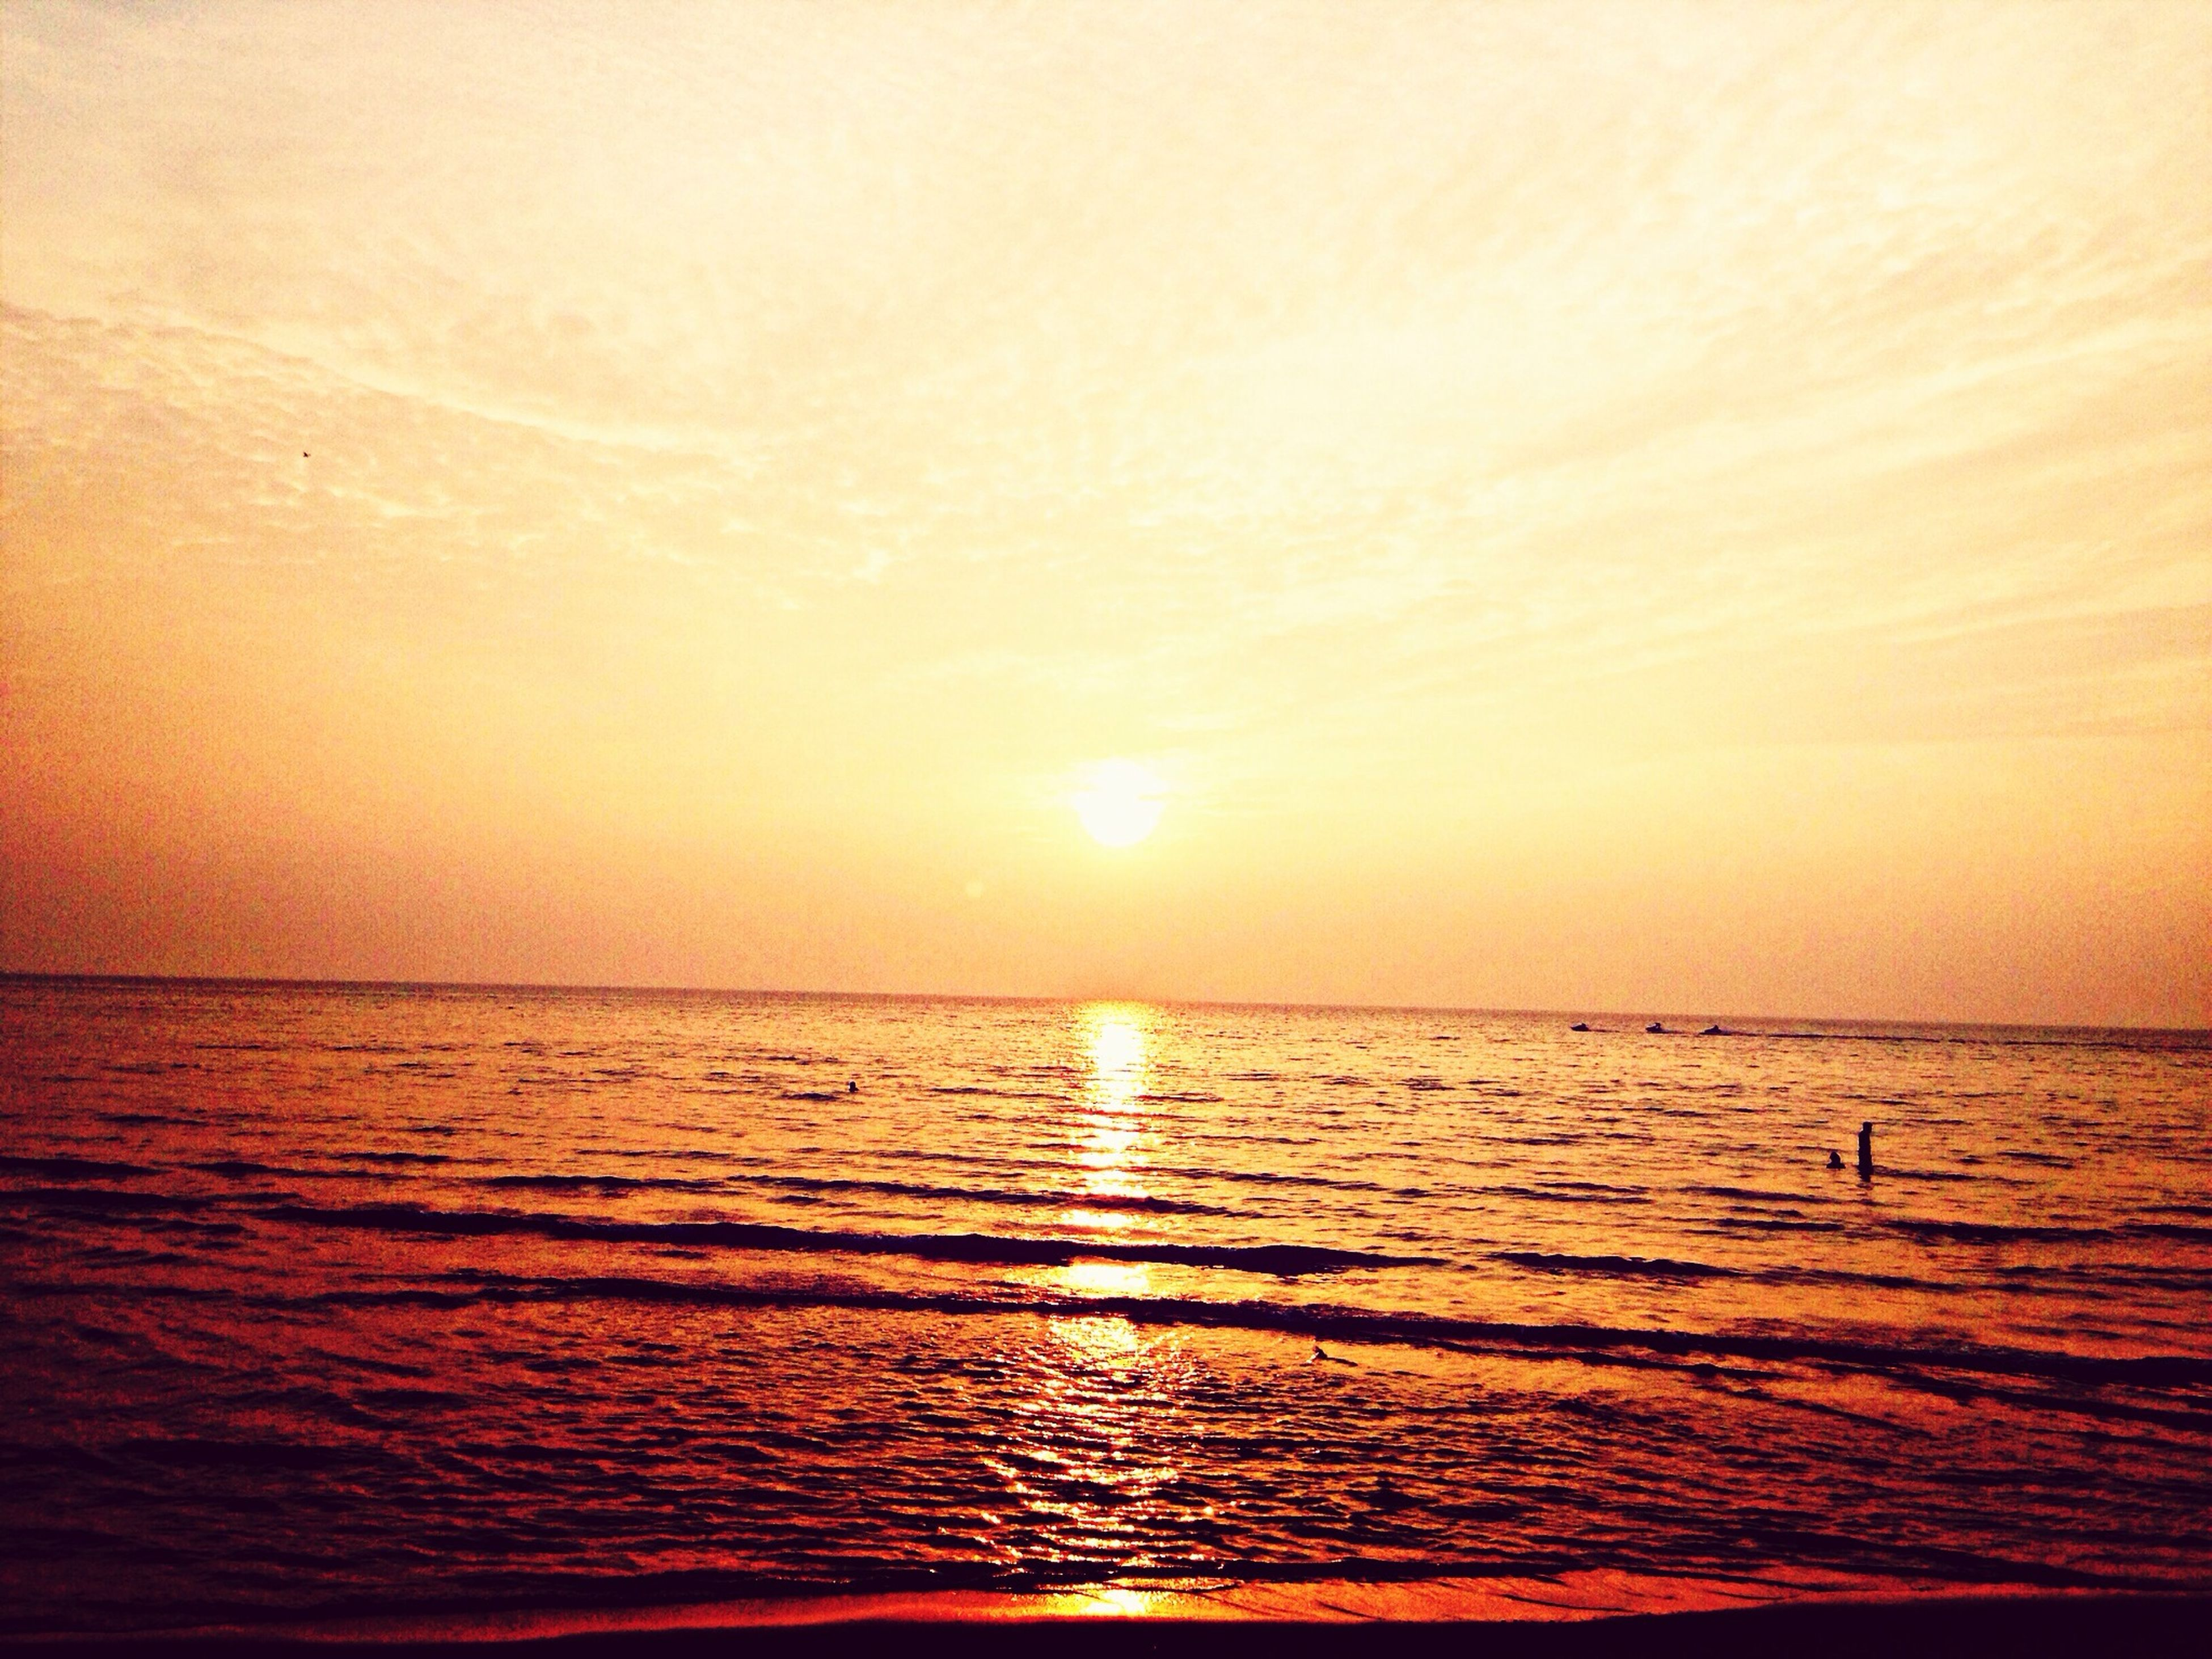 water, sunset, sea, tranquil scene, scenics, horizon over water, tranquility, beauty in nature, orange color, waterfront, sun, reflection, rippled, idyllic, nature, sky, sunlight, beach, silhouette, outdoors